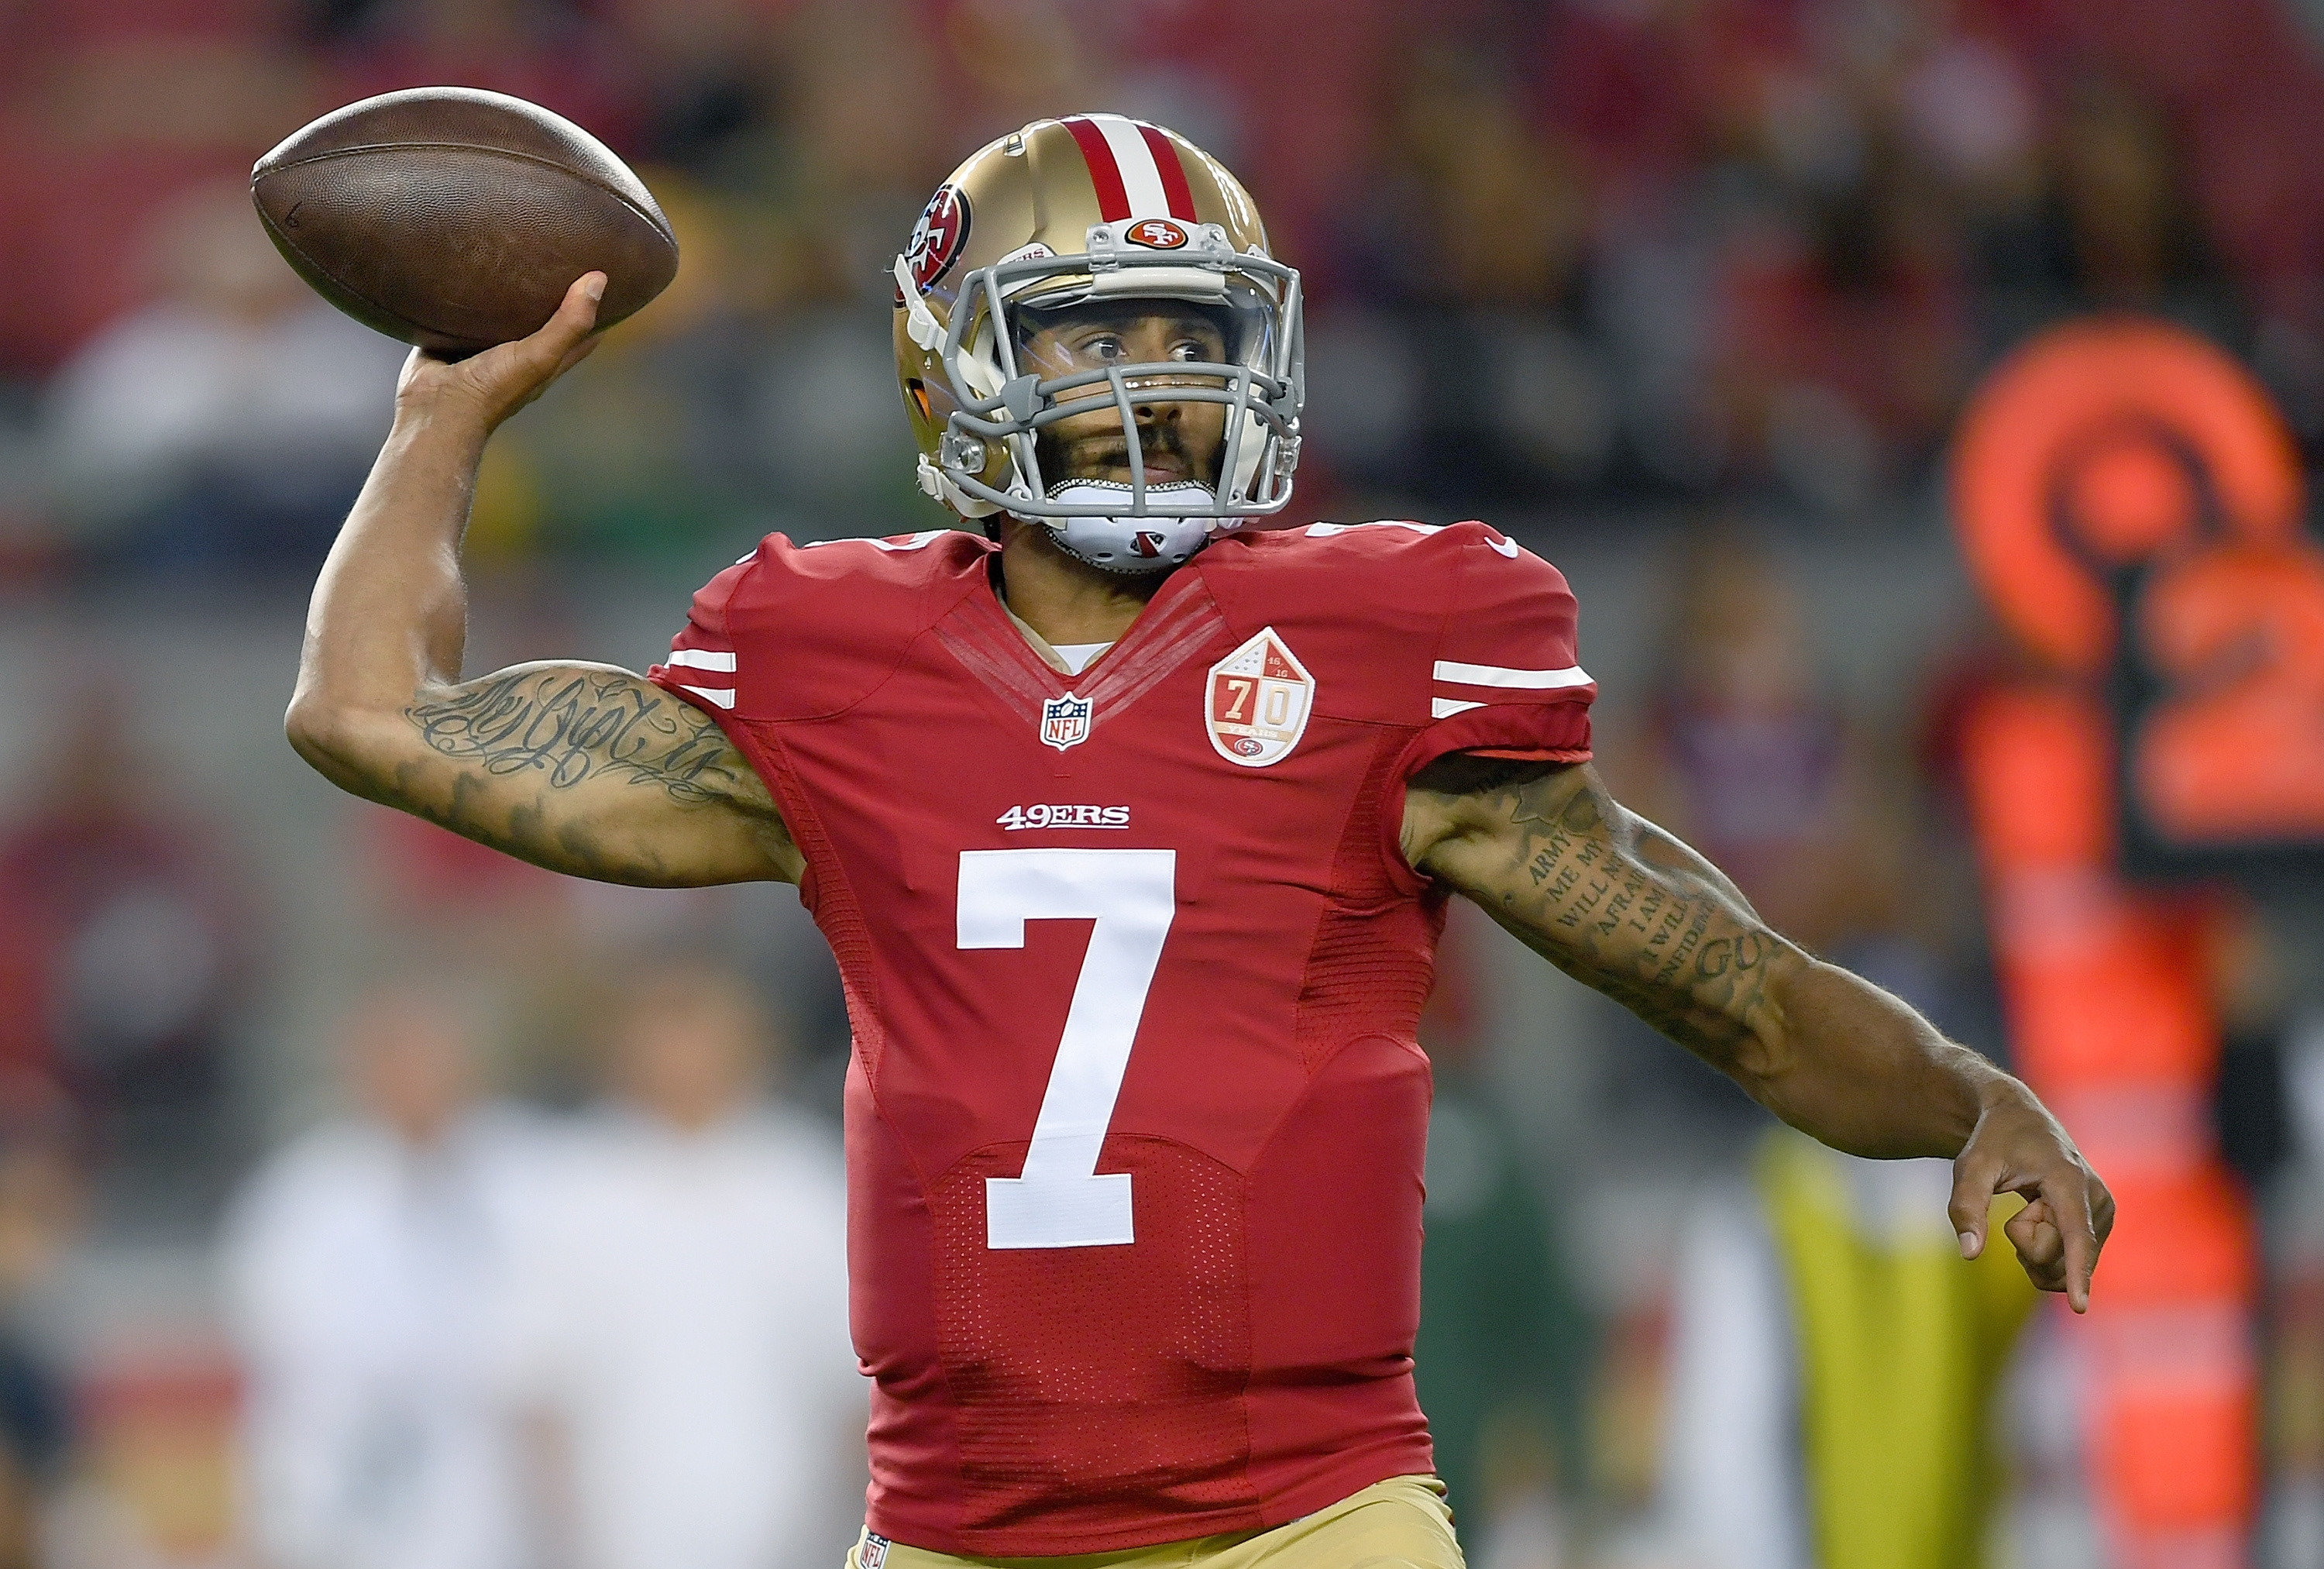 San Francisco 49ers quarterback Colin Kaepernick will challenge the Bills' defense with his running ability.